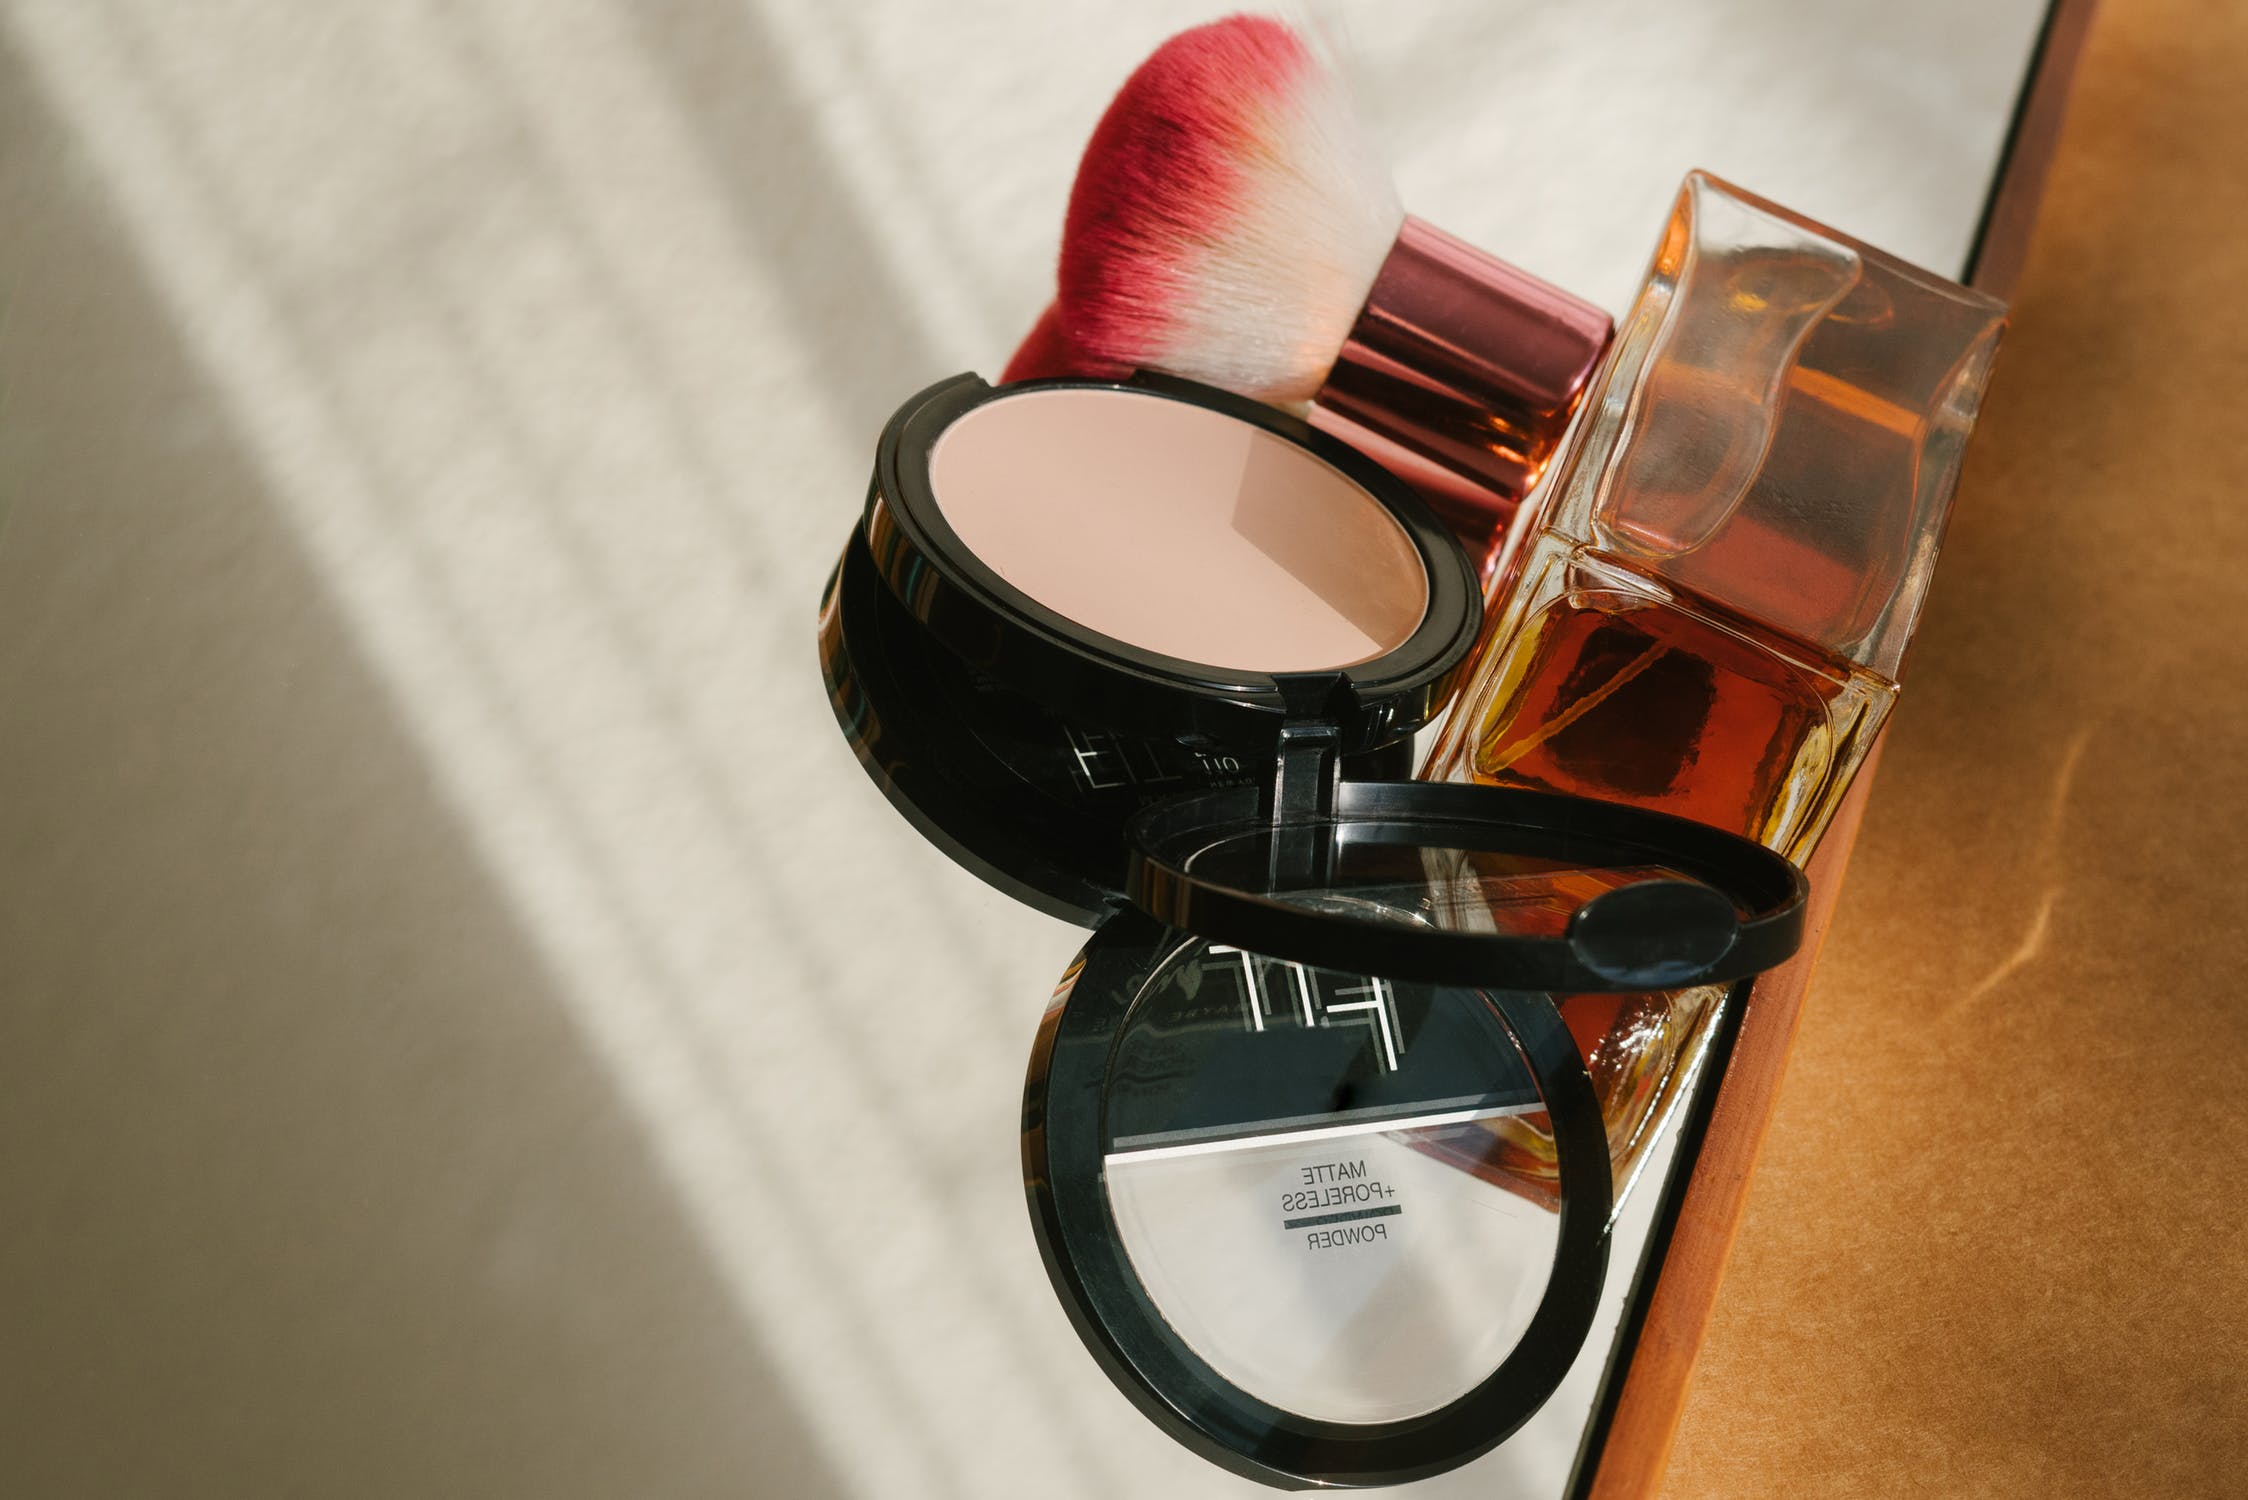 7 Best Concealers for Oily Skin on The Market